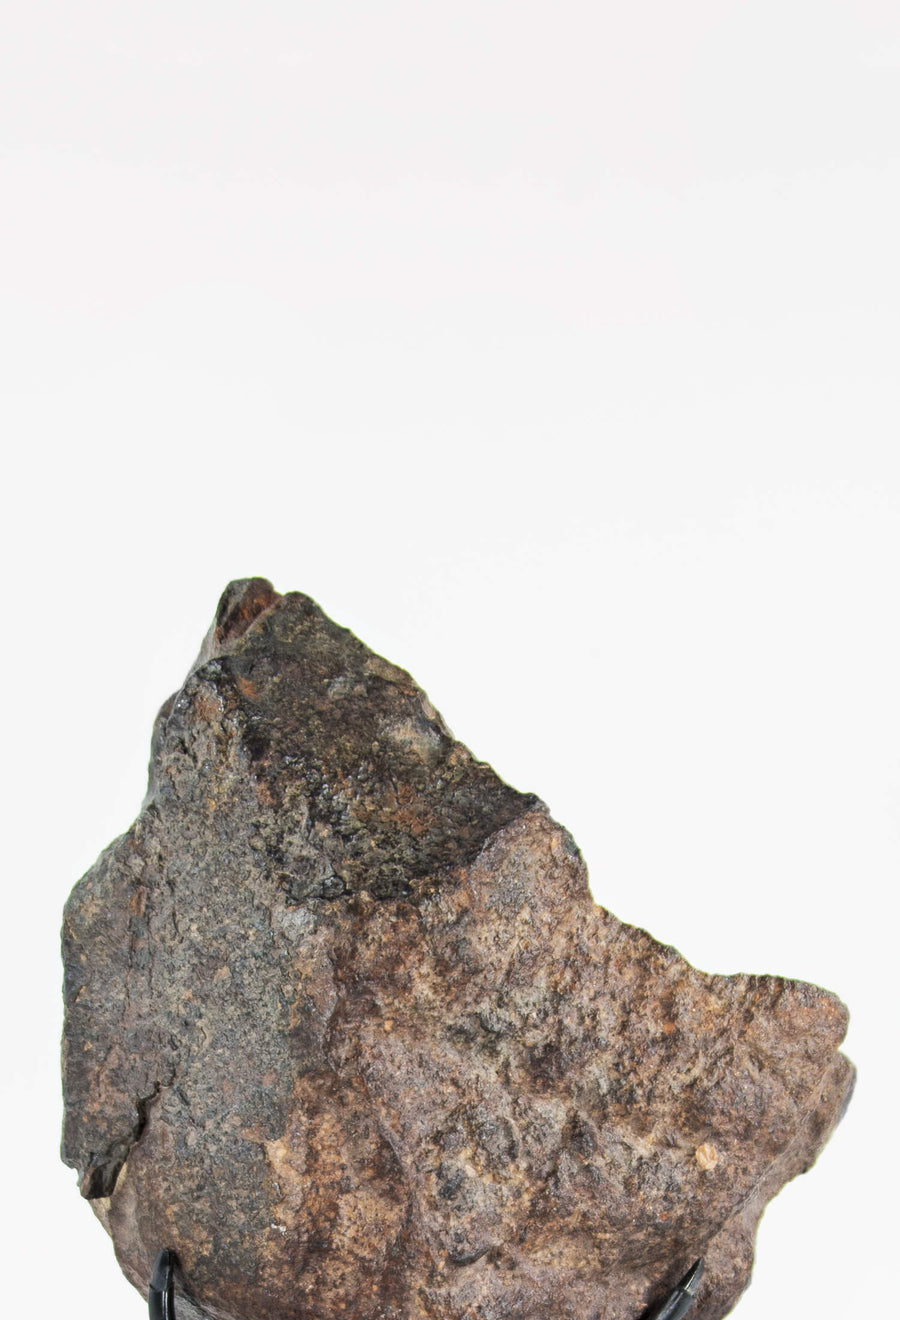 NWA Meteorite on decor bronze plinth